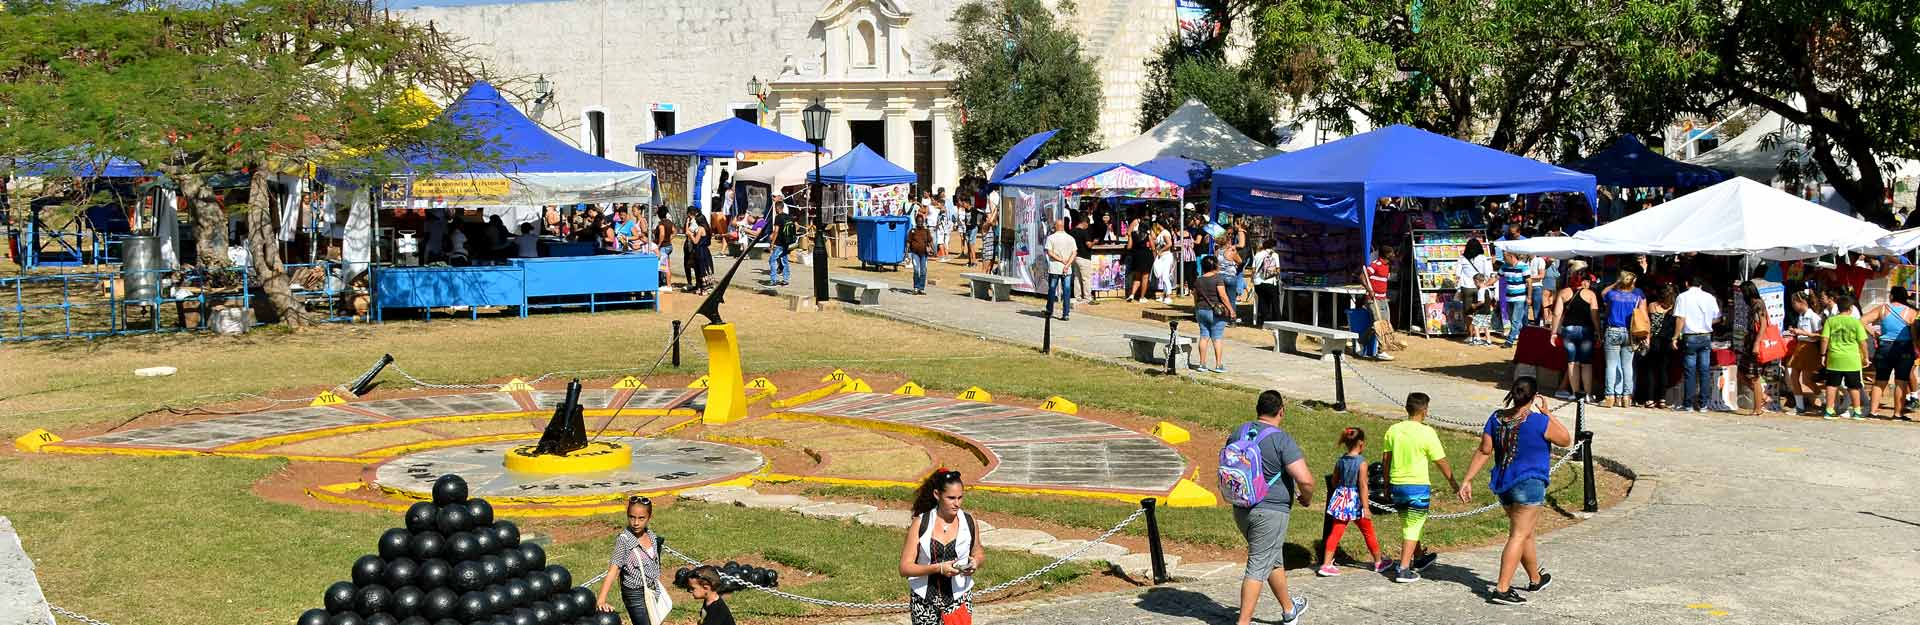 Book Fair, Event Tourism, Morro Complex - Cabaña, Cuba Travel